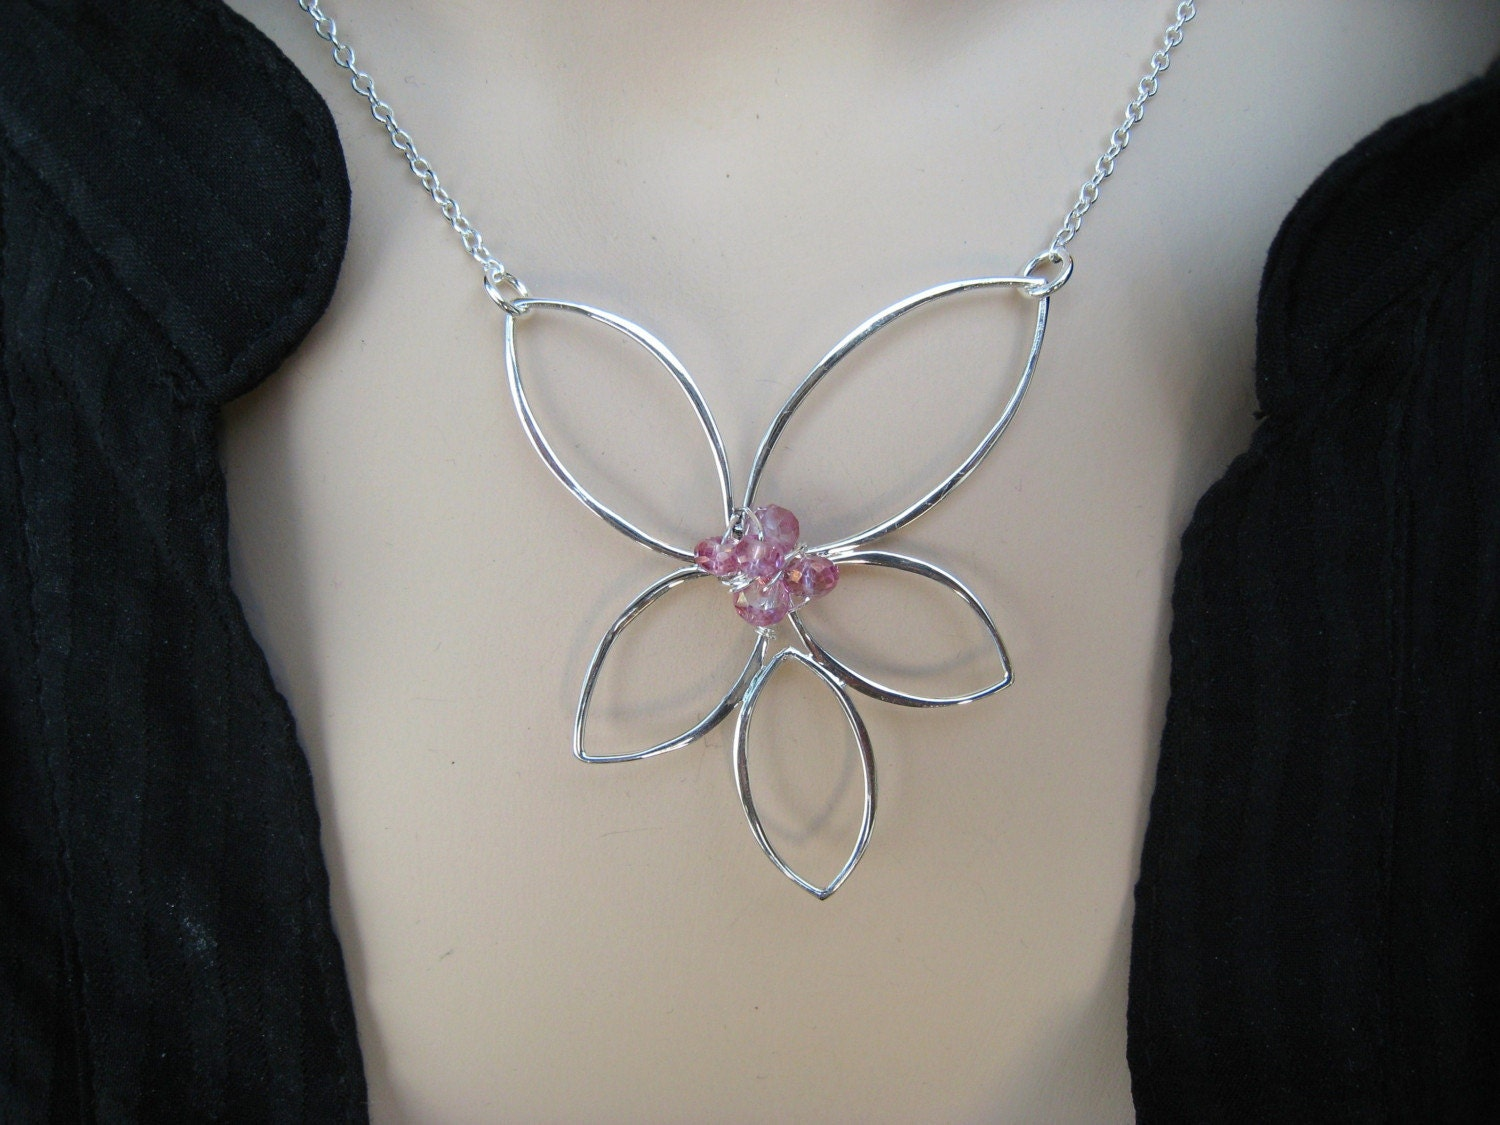 Large Free Form Sterling Silver Lotus Flower Pendant Necklace with Pink Topaz Rondelles